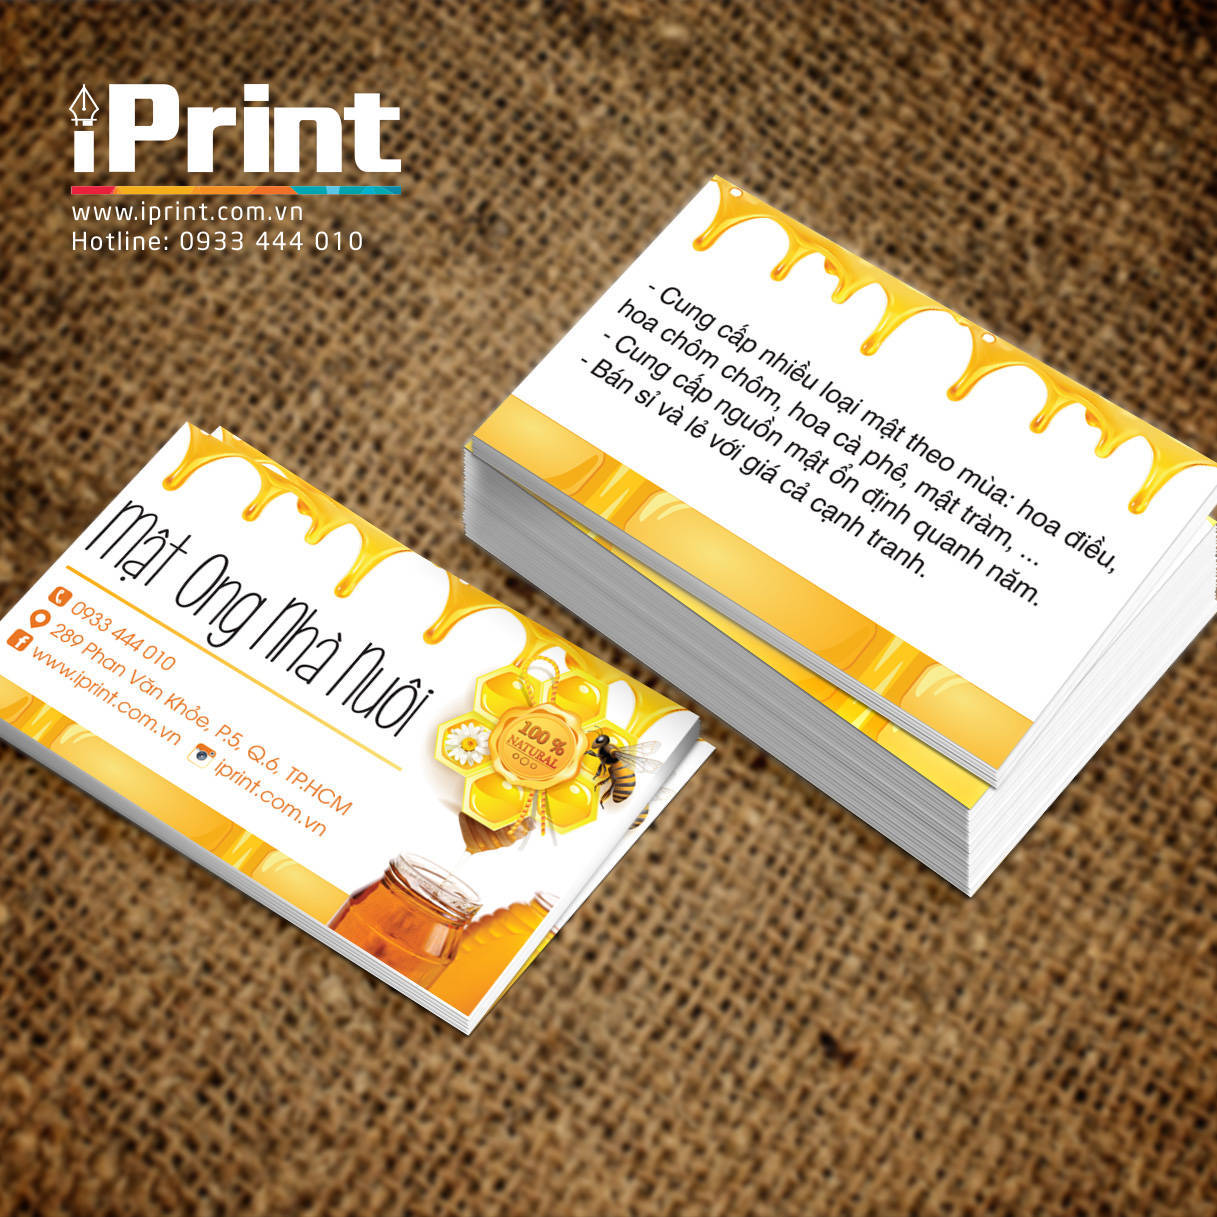 mau-name-card-shop-thoi-trang-mau-name-card-dep (89)